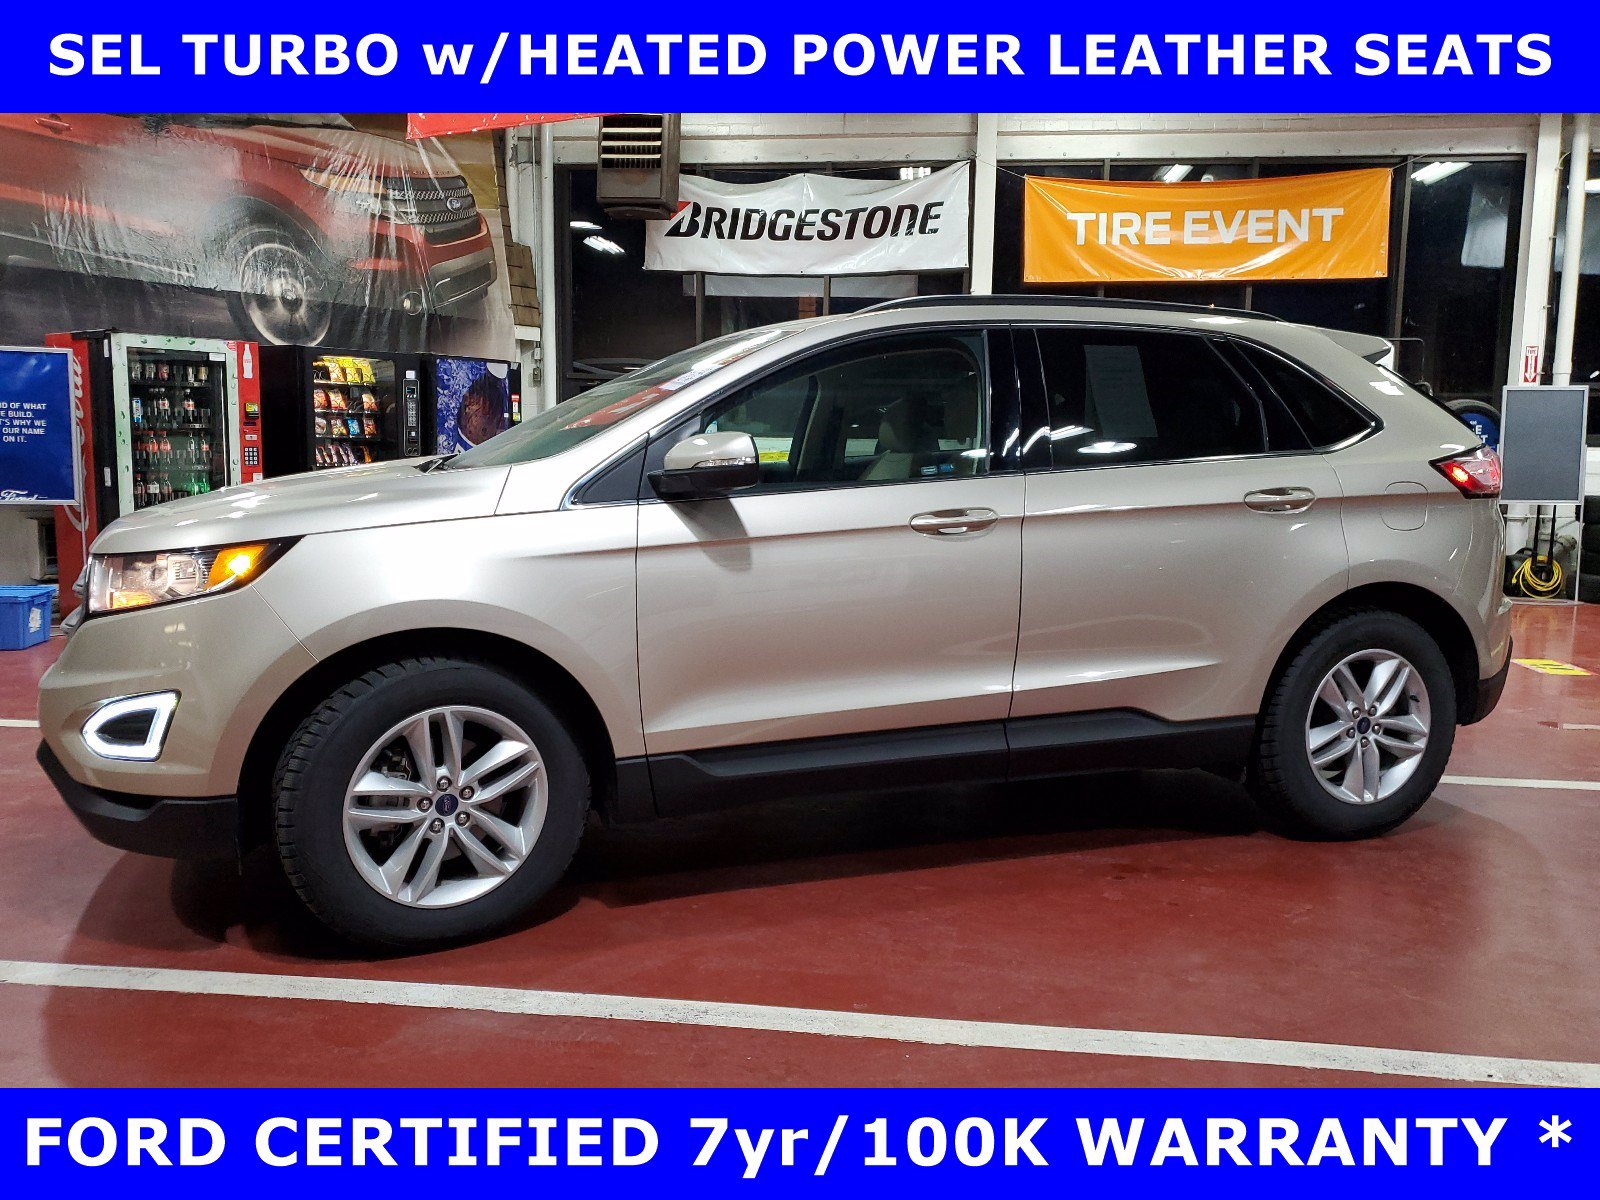 2018 Ford Edge CERTIFIED SEL TURBO w/Htd Pwr LEATHER SUV